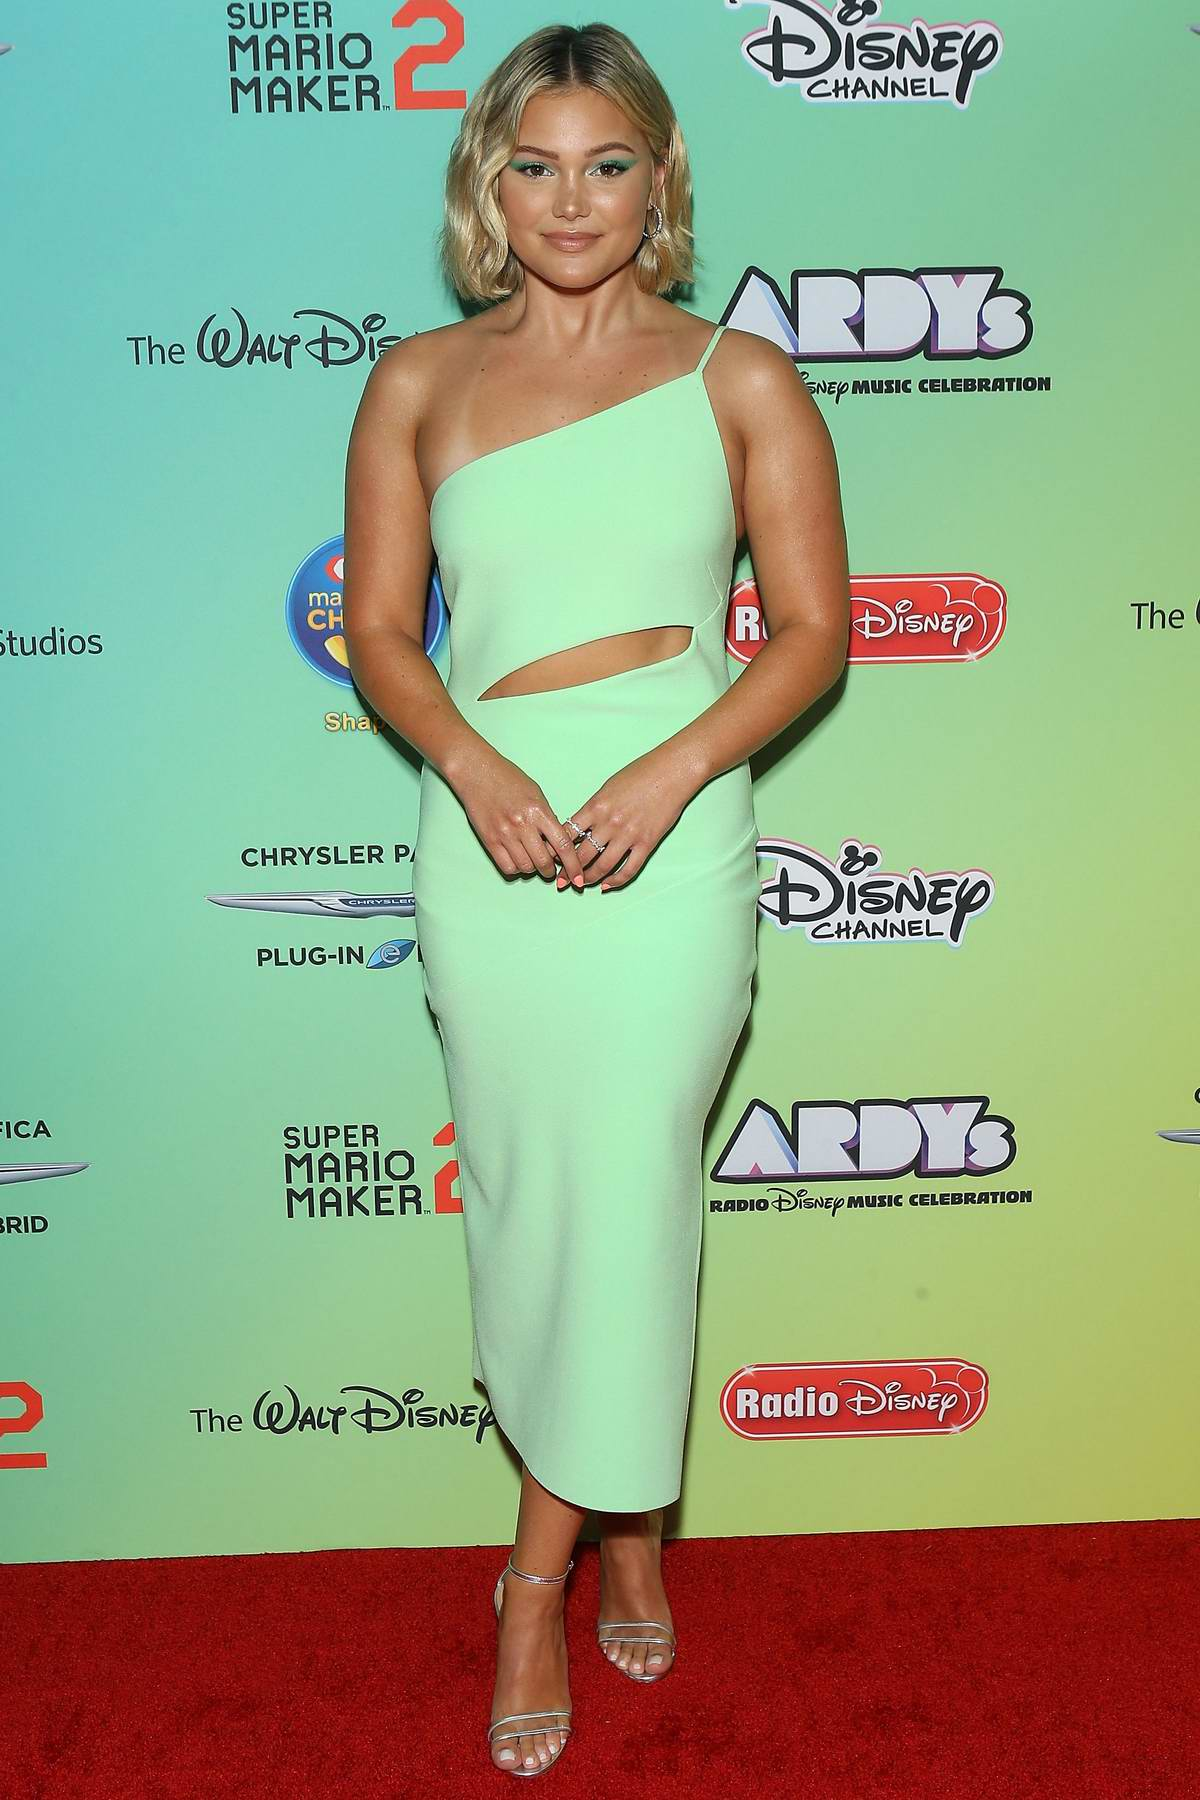 Olivia Holt attends the 2019 Radio Disney Music Awards (ARDYs 2019) at the CBS Radford Studios in Studio City, California